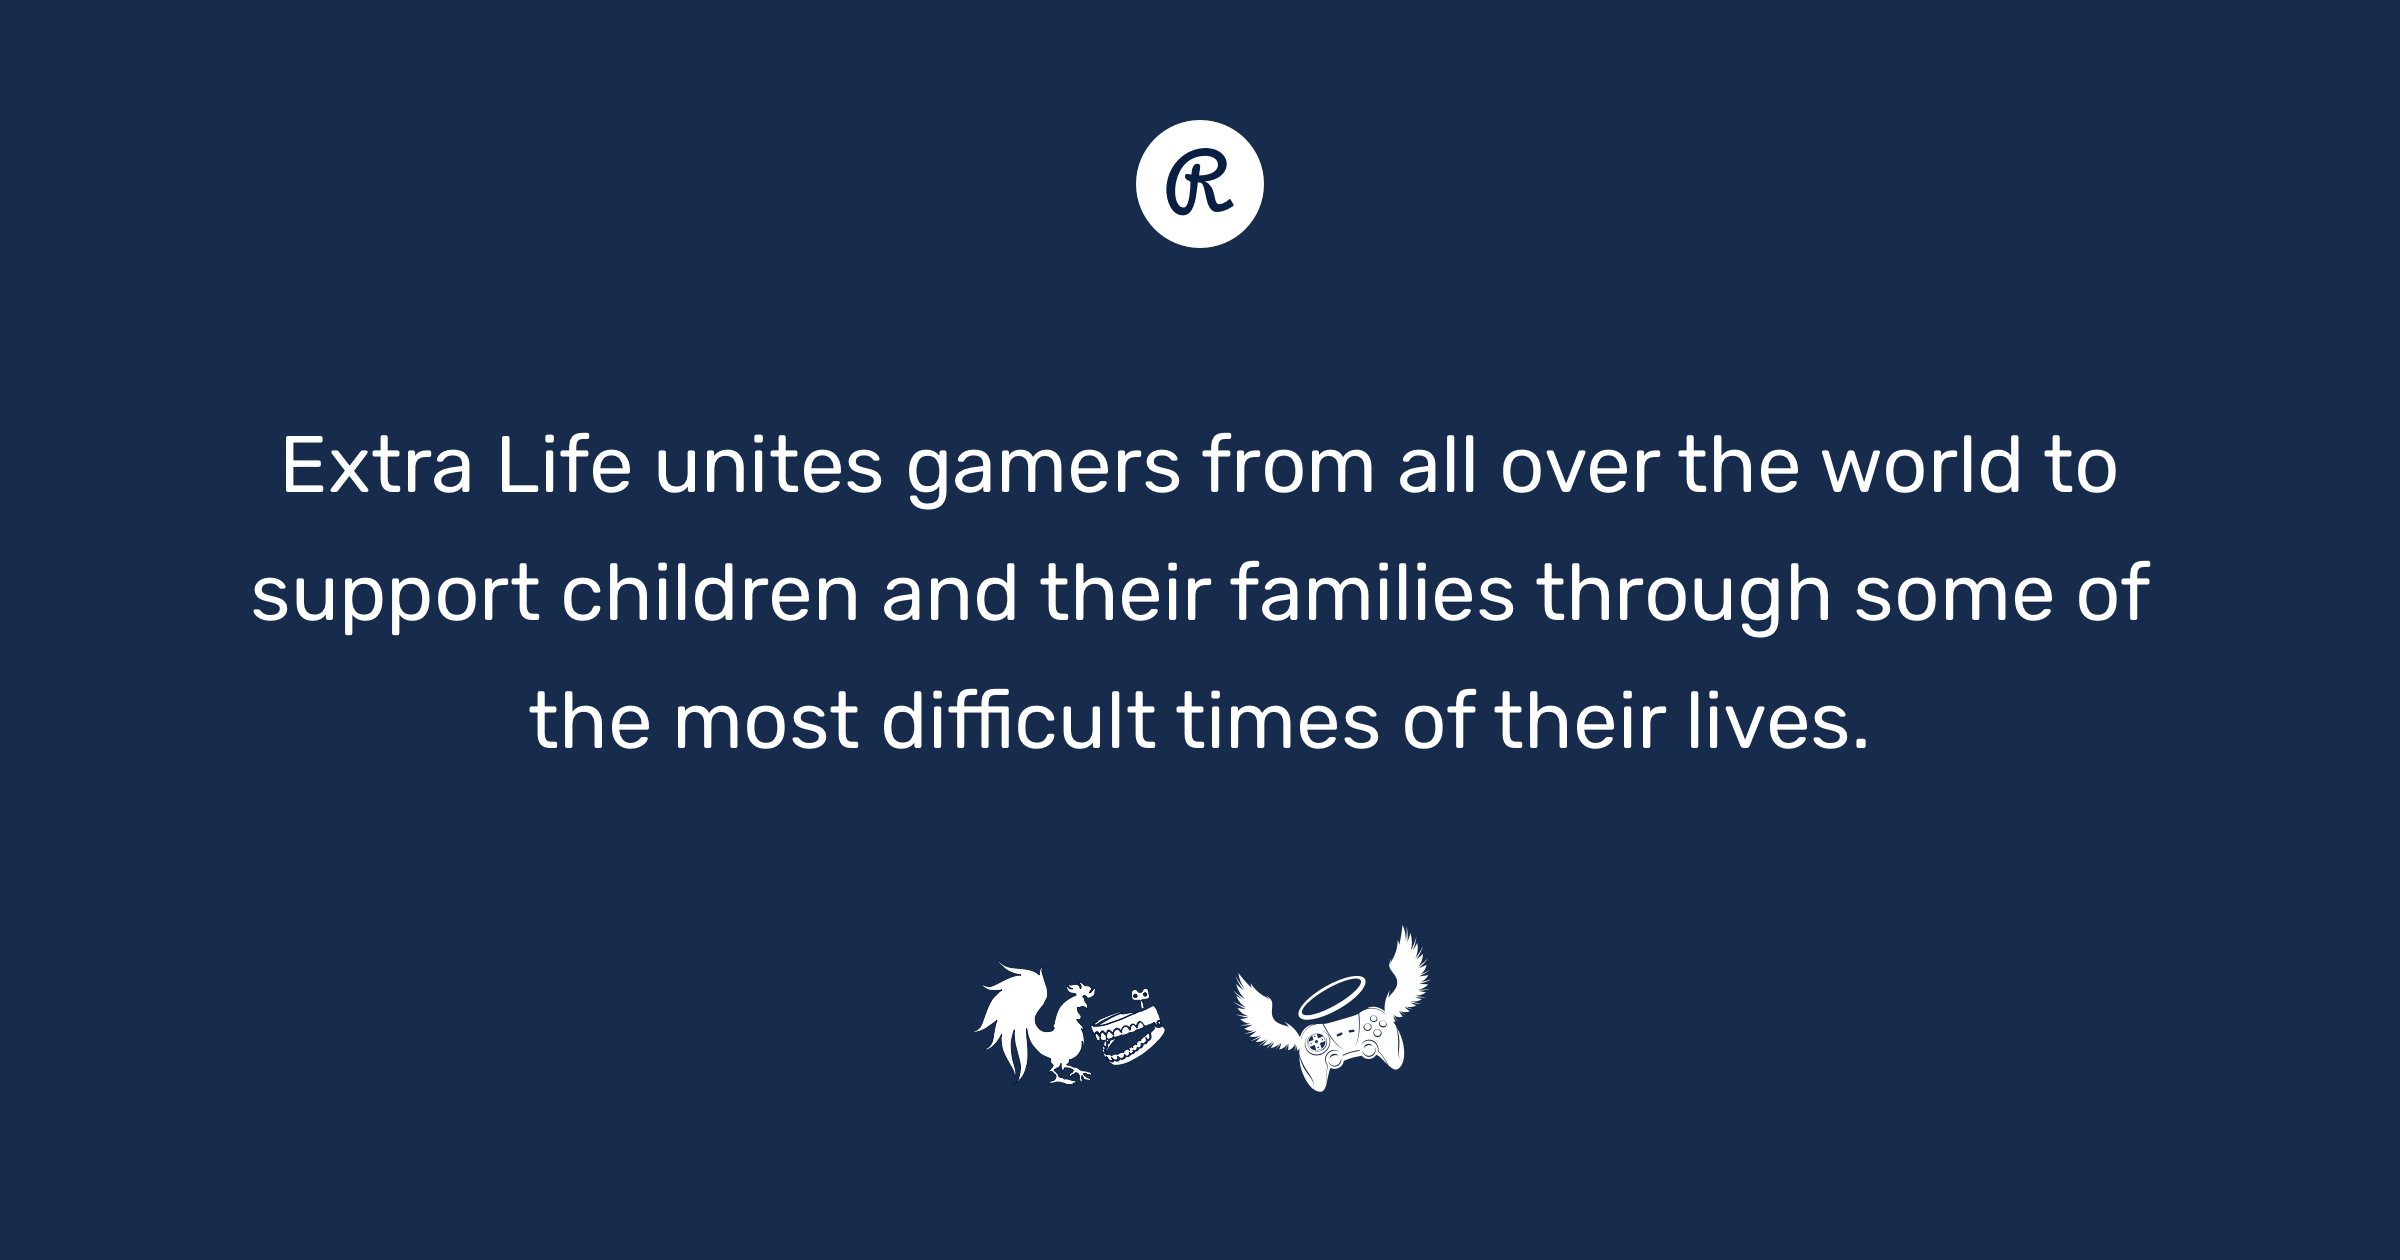 Extra Life unites gamers from all over the world to support children